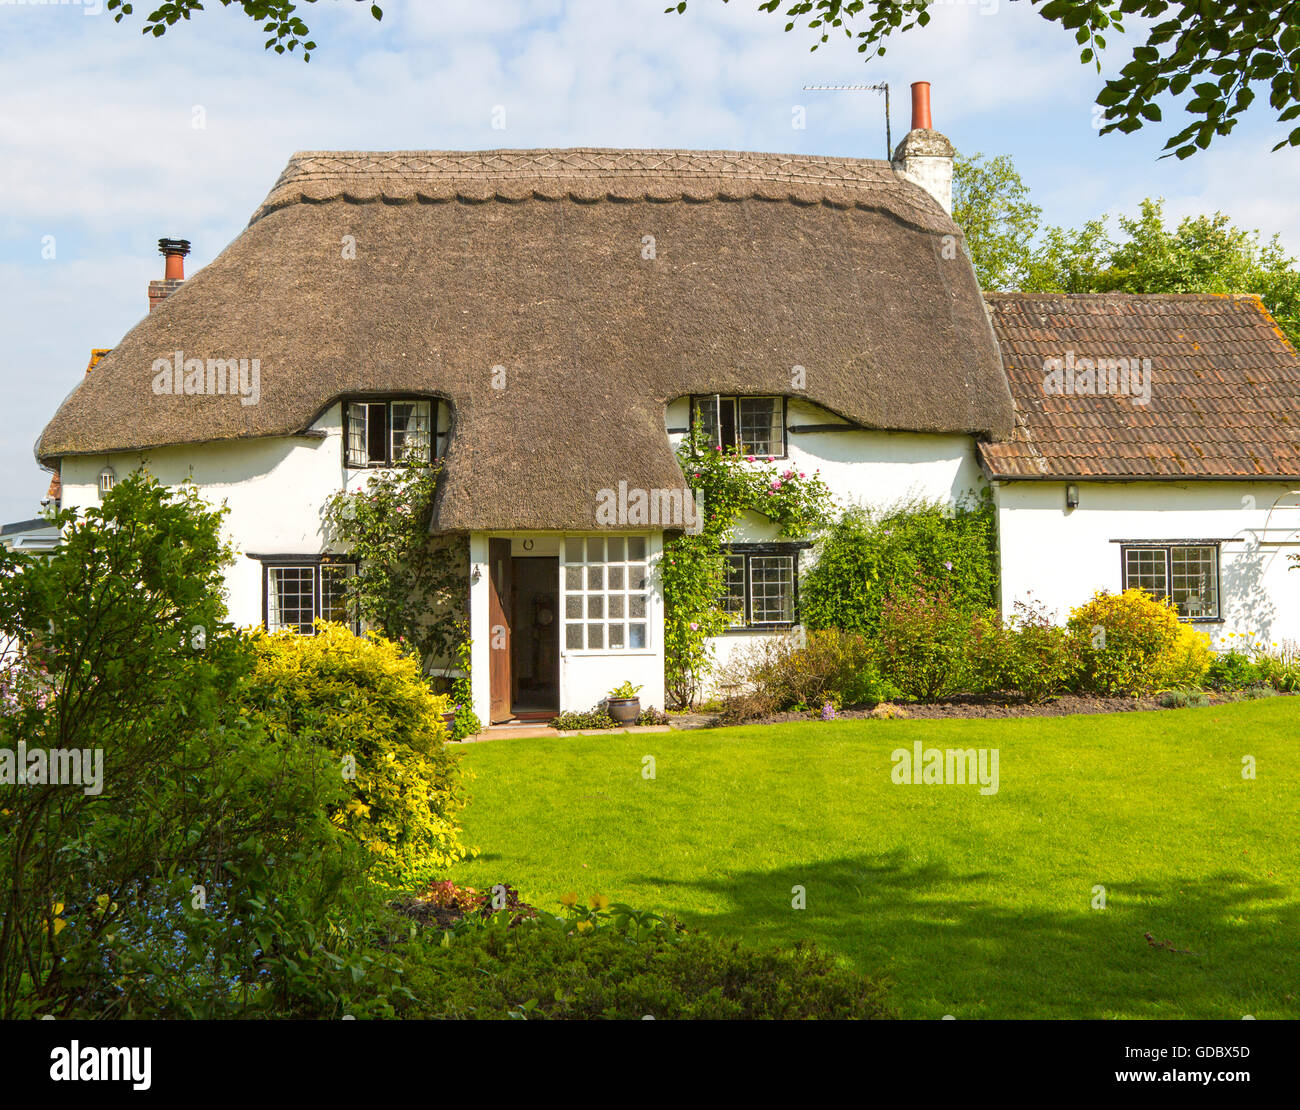 Property Released pretty historic thatched cottage and garden, Cherhill, Wiltshire, England, UK - Stock Image